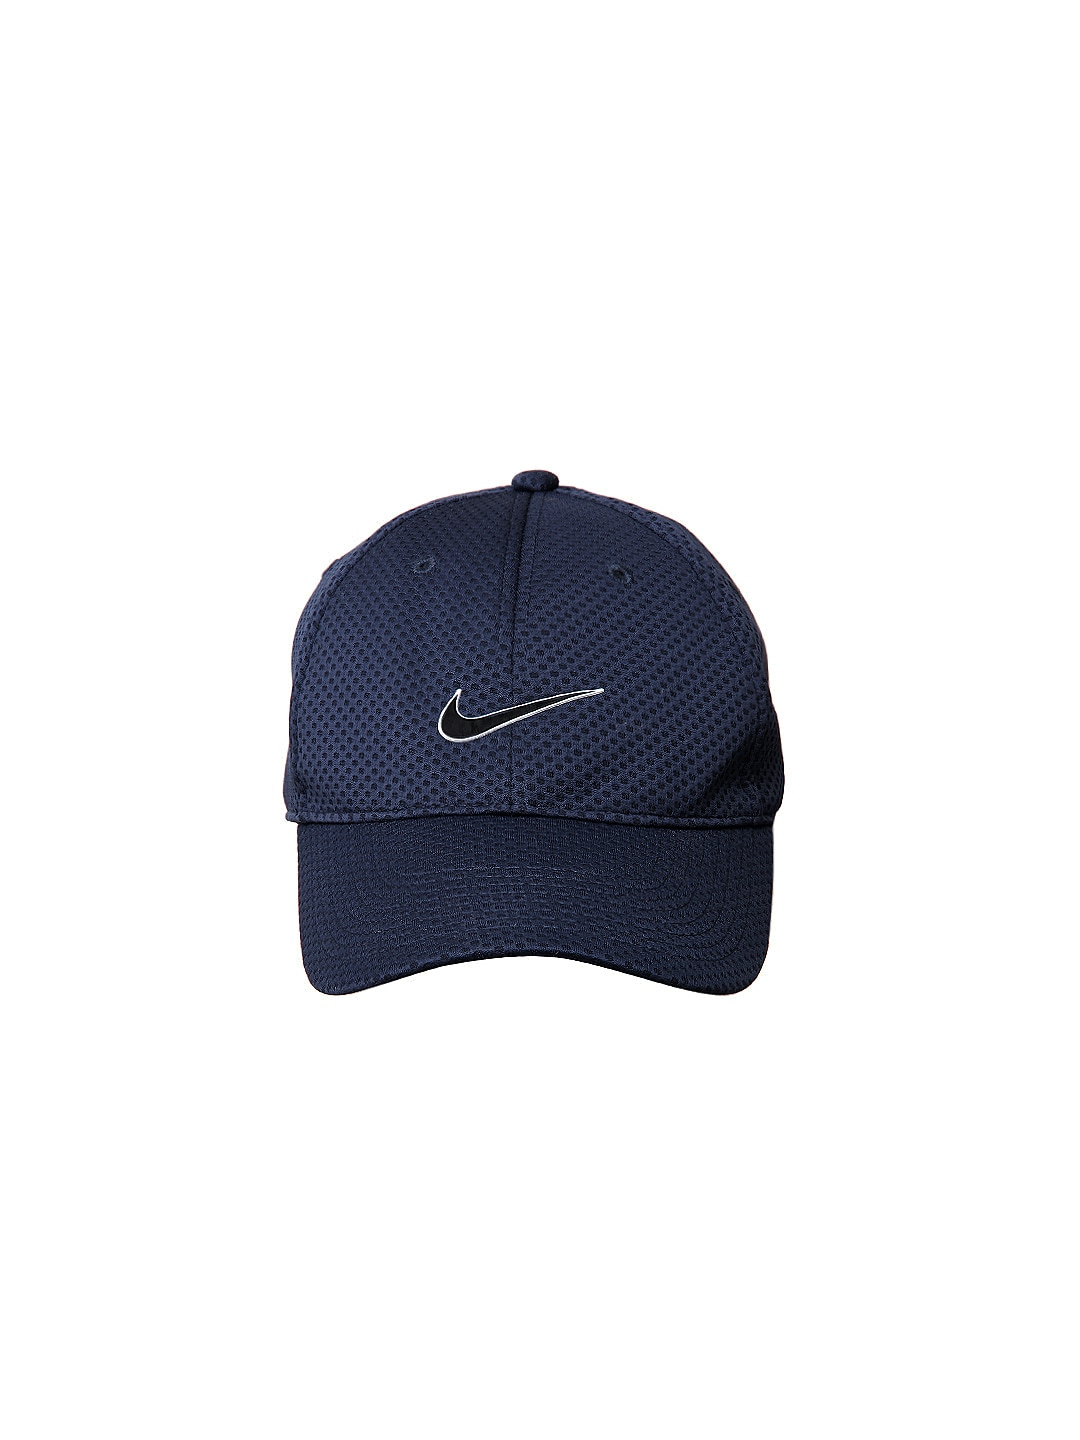 Nike 480387-453 Unisex Navy Heritage Cap - Best Price in India ... 15a1c3d5bf44